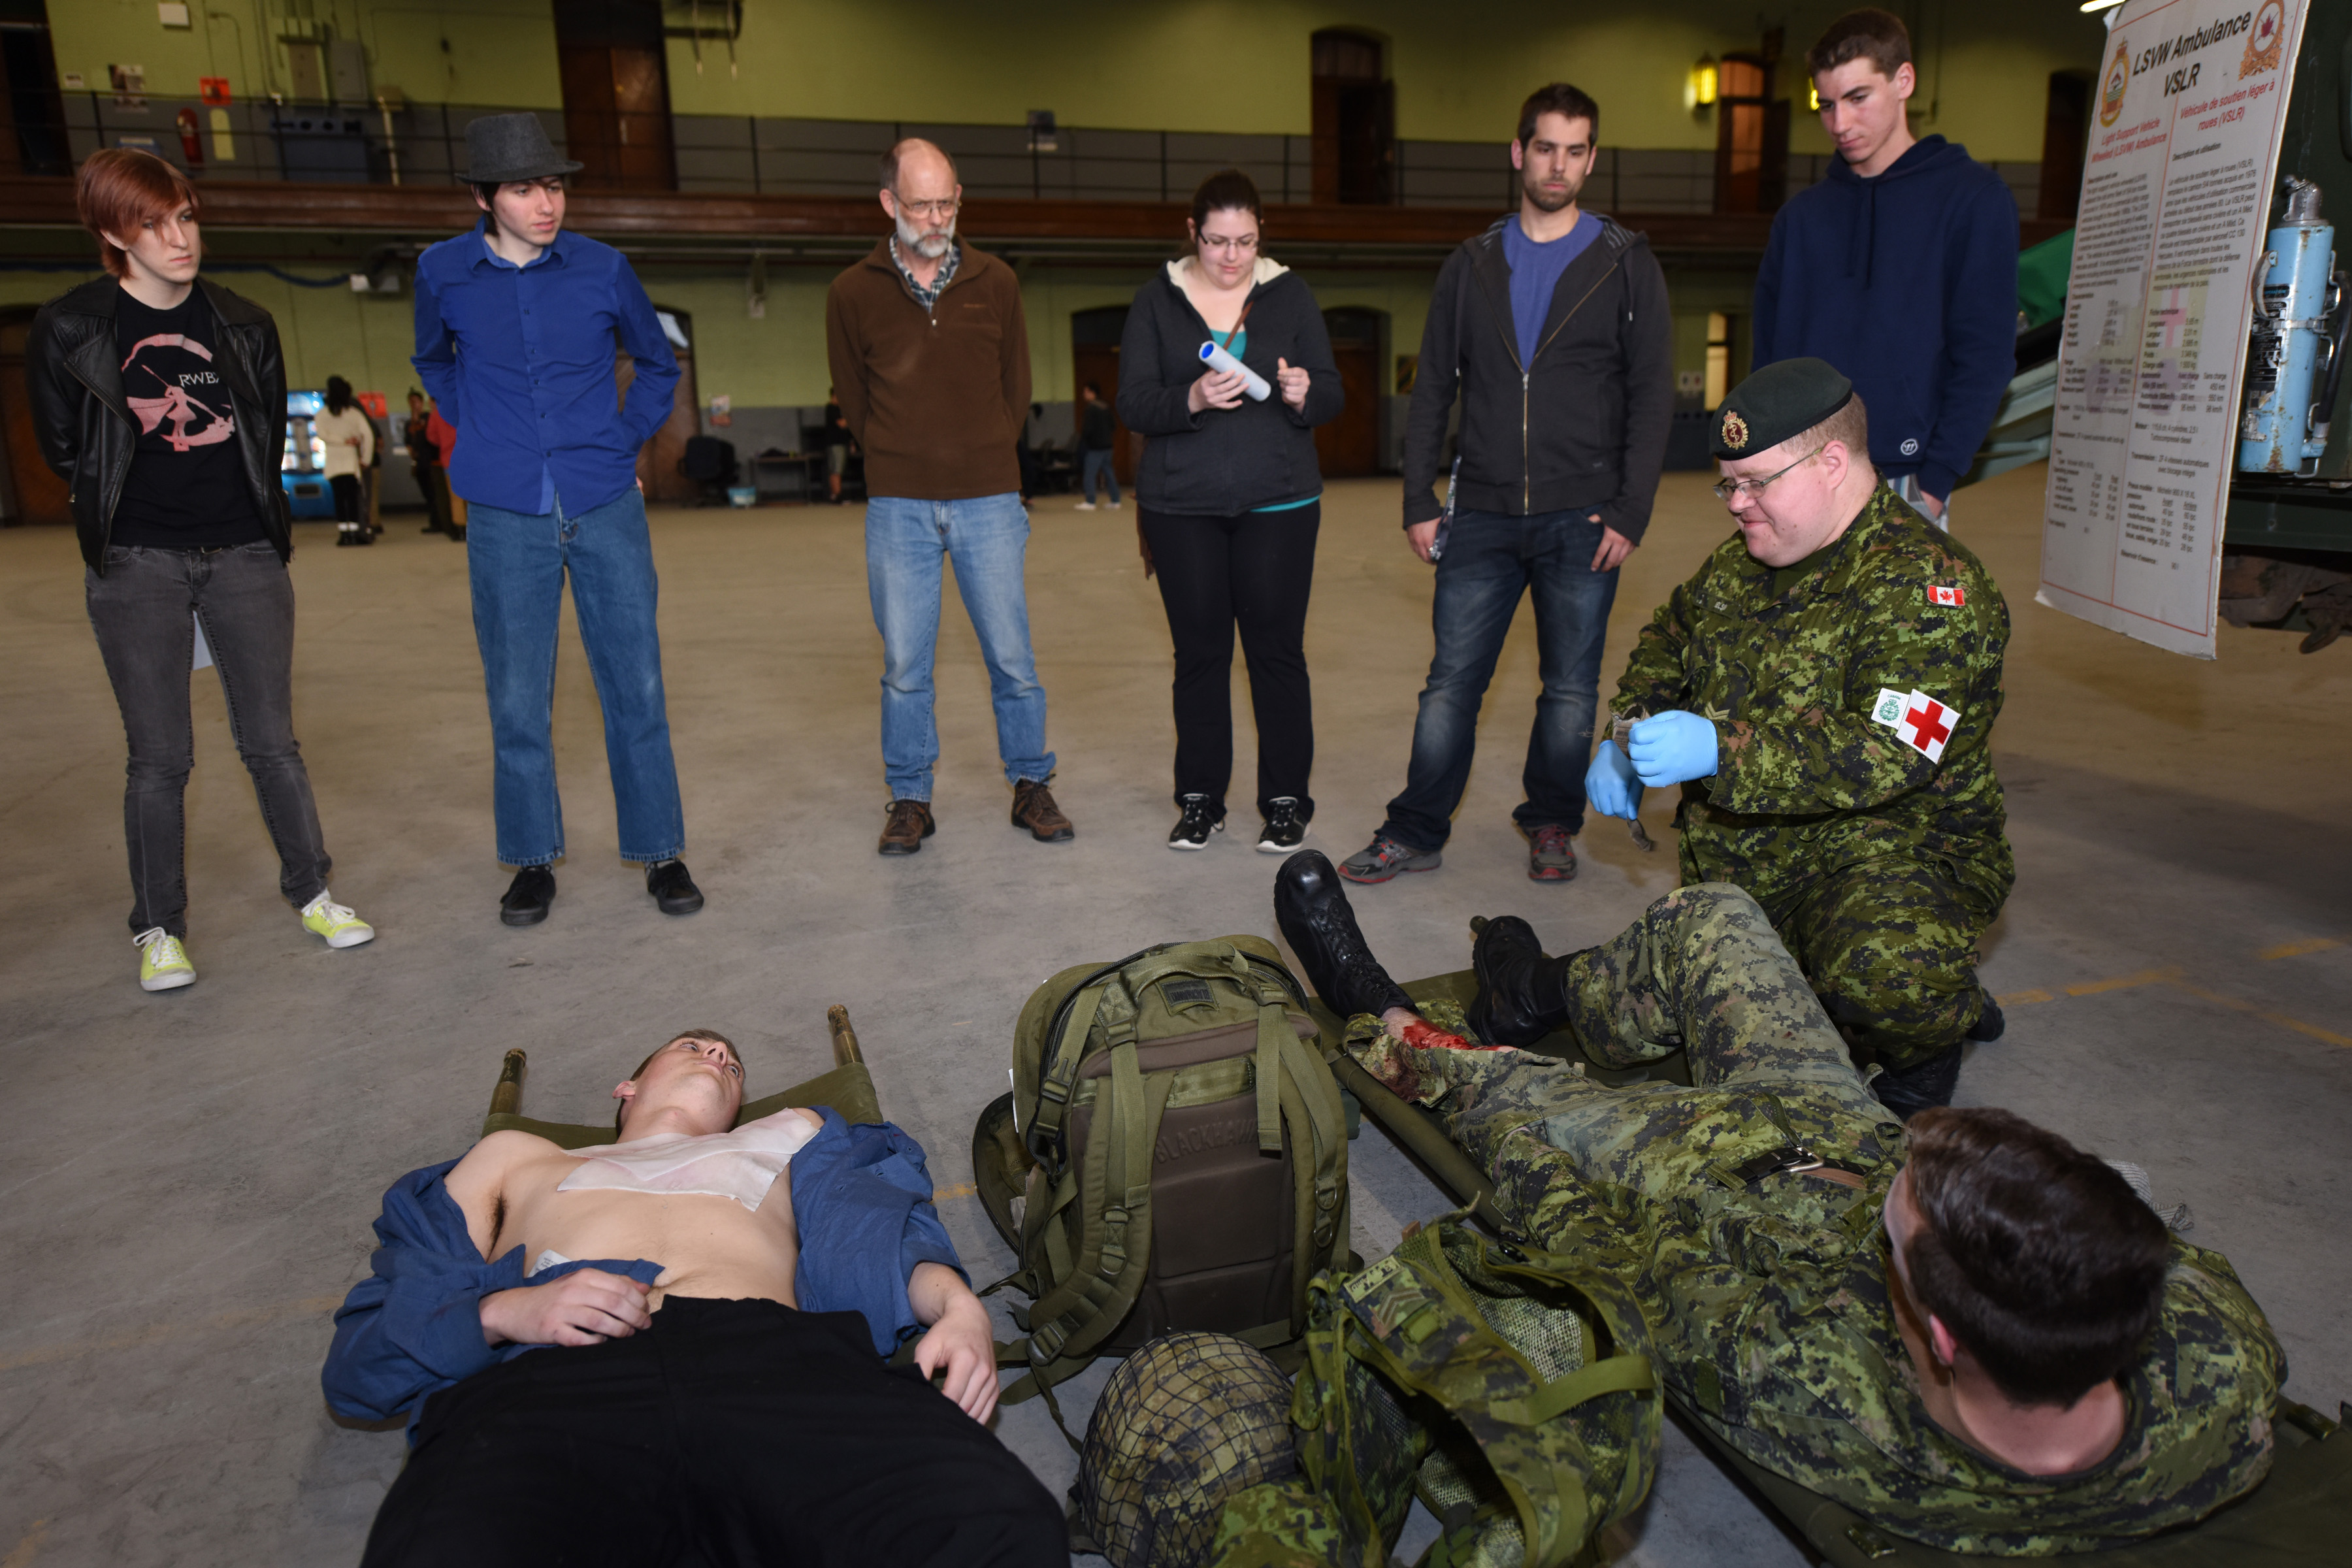 Corporal Russel Nelson, a medic with 33 Field Ambulance in Halifax, Nova Scotia, demonstrates the application of a field dressing to a simulated injury before a group of Army Civilian Engagement Program candidates in the Halifax Armouries on 7 May 2015.